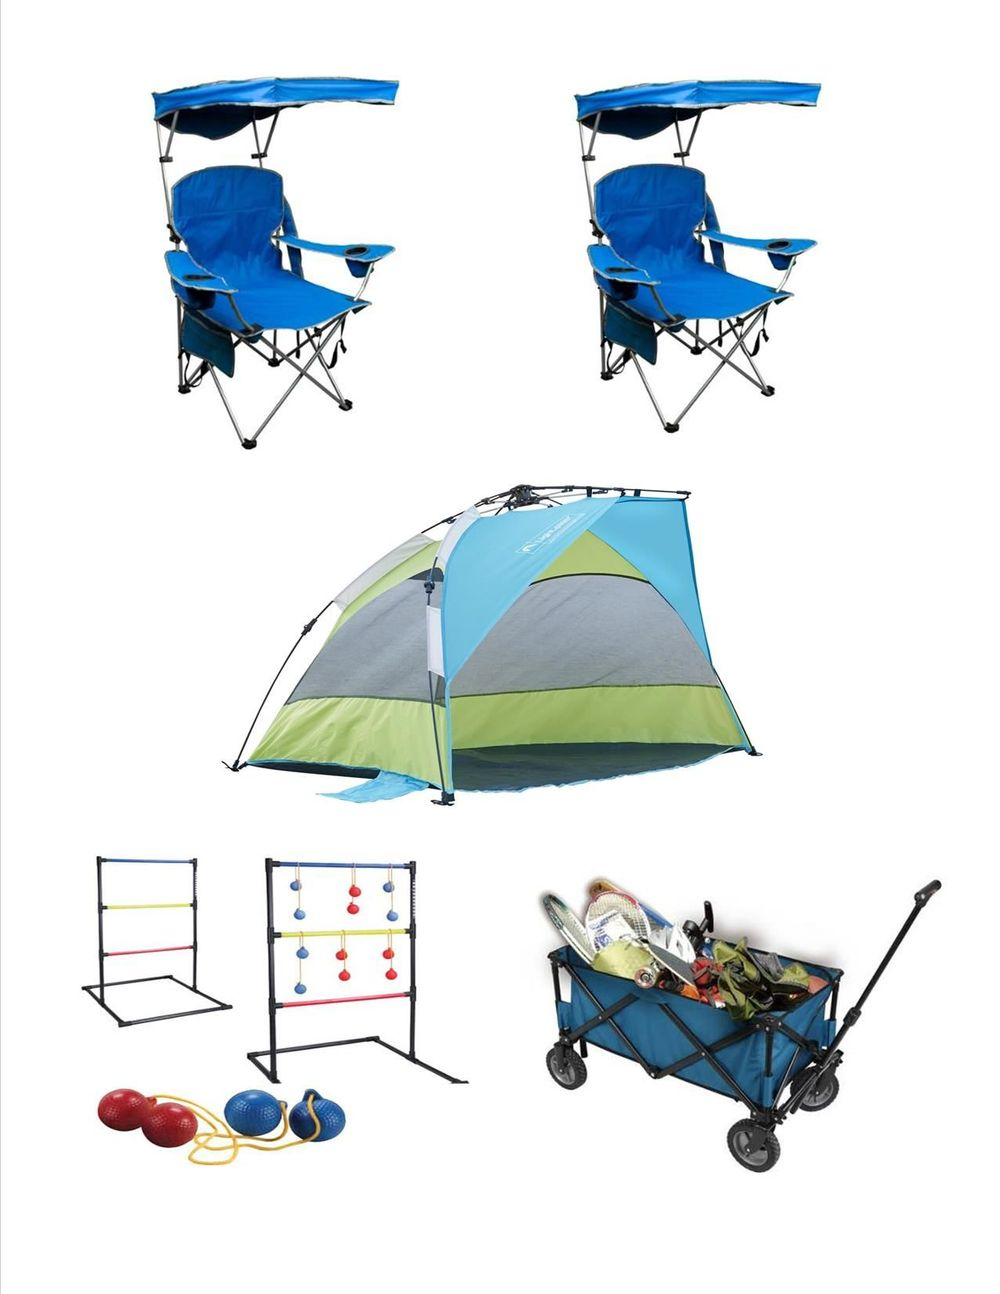 Rent Beach chairs,beach shelter, wagon and games package